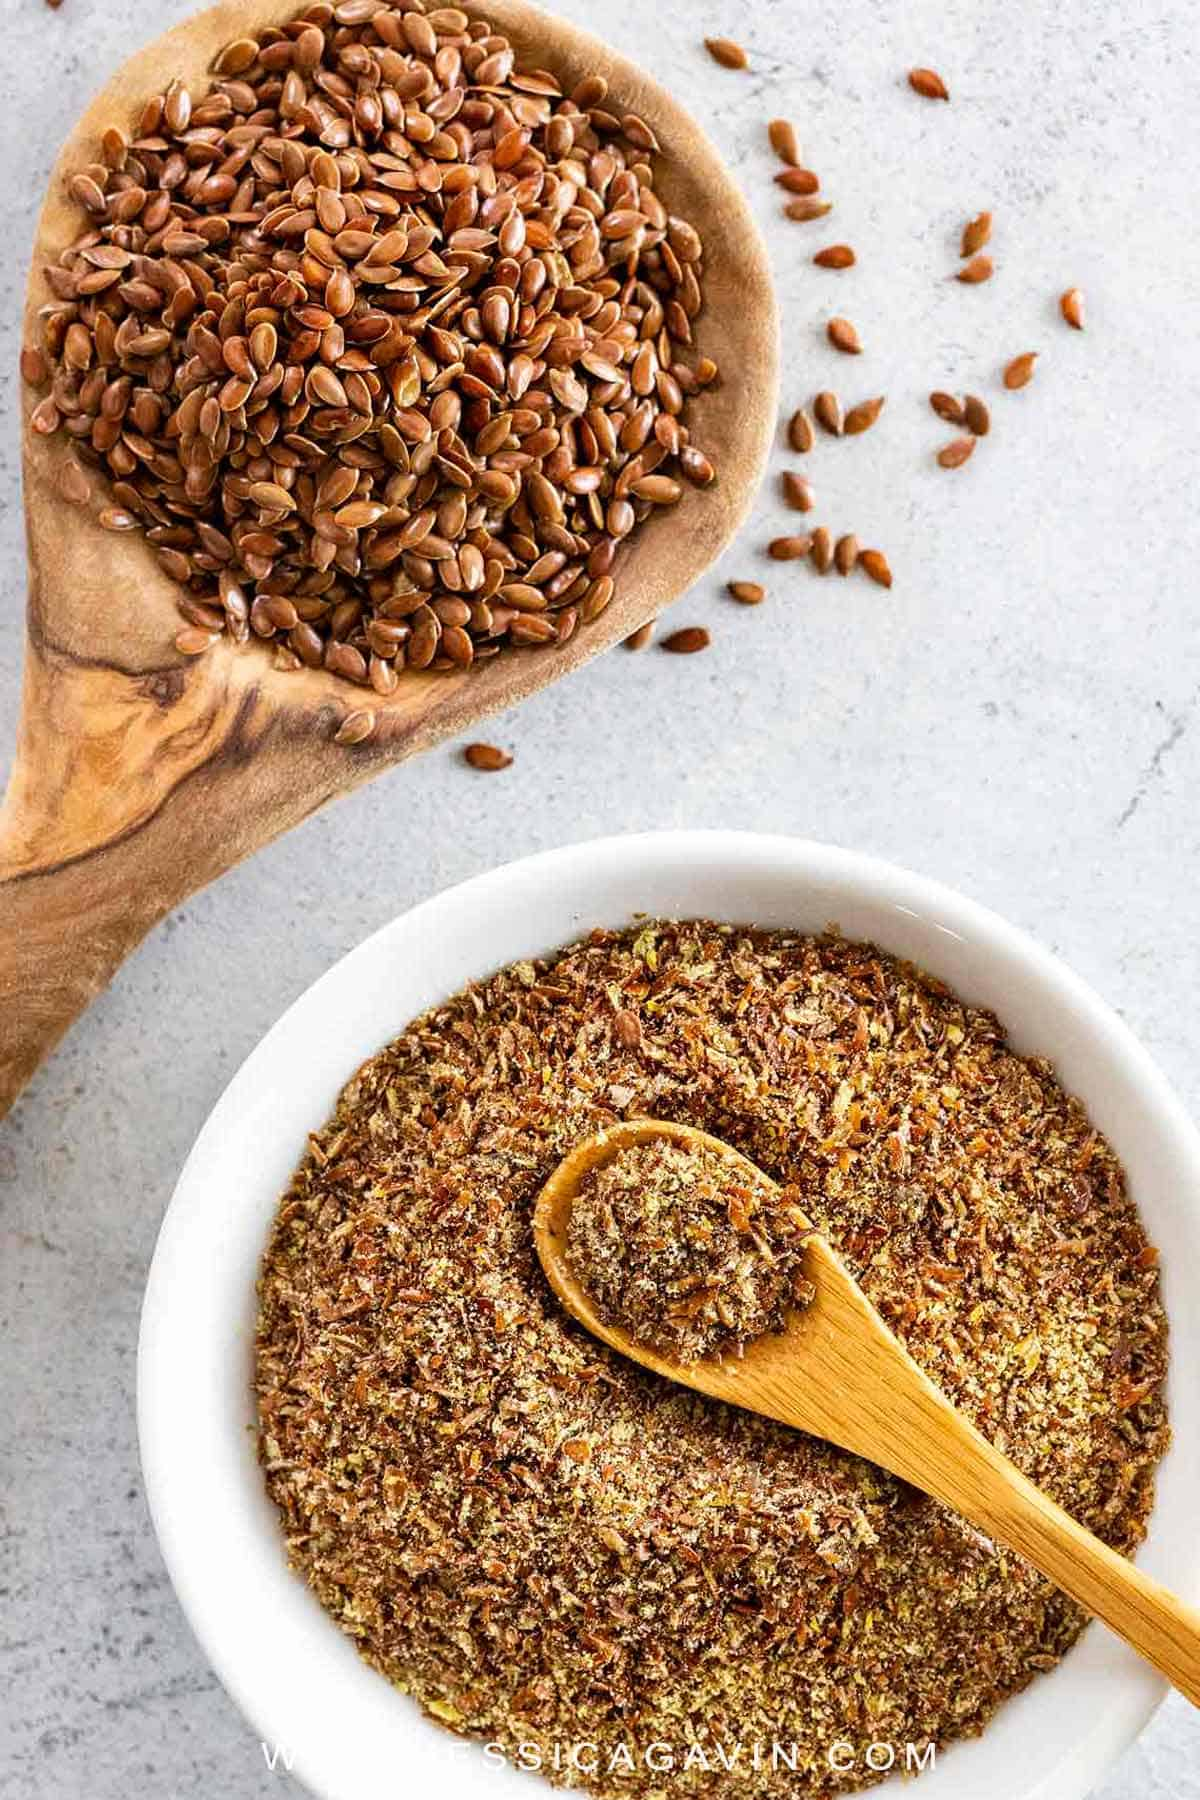 Once you learn all the amazing ways flaxseed benefits heart health and lowers cholesterol levels, you'll be using it every chance you get. #flaxseeds #healthy #hearthealth #healthyrecipes #flaxegg